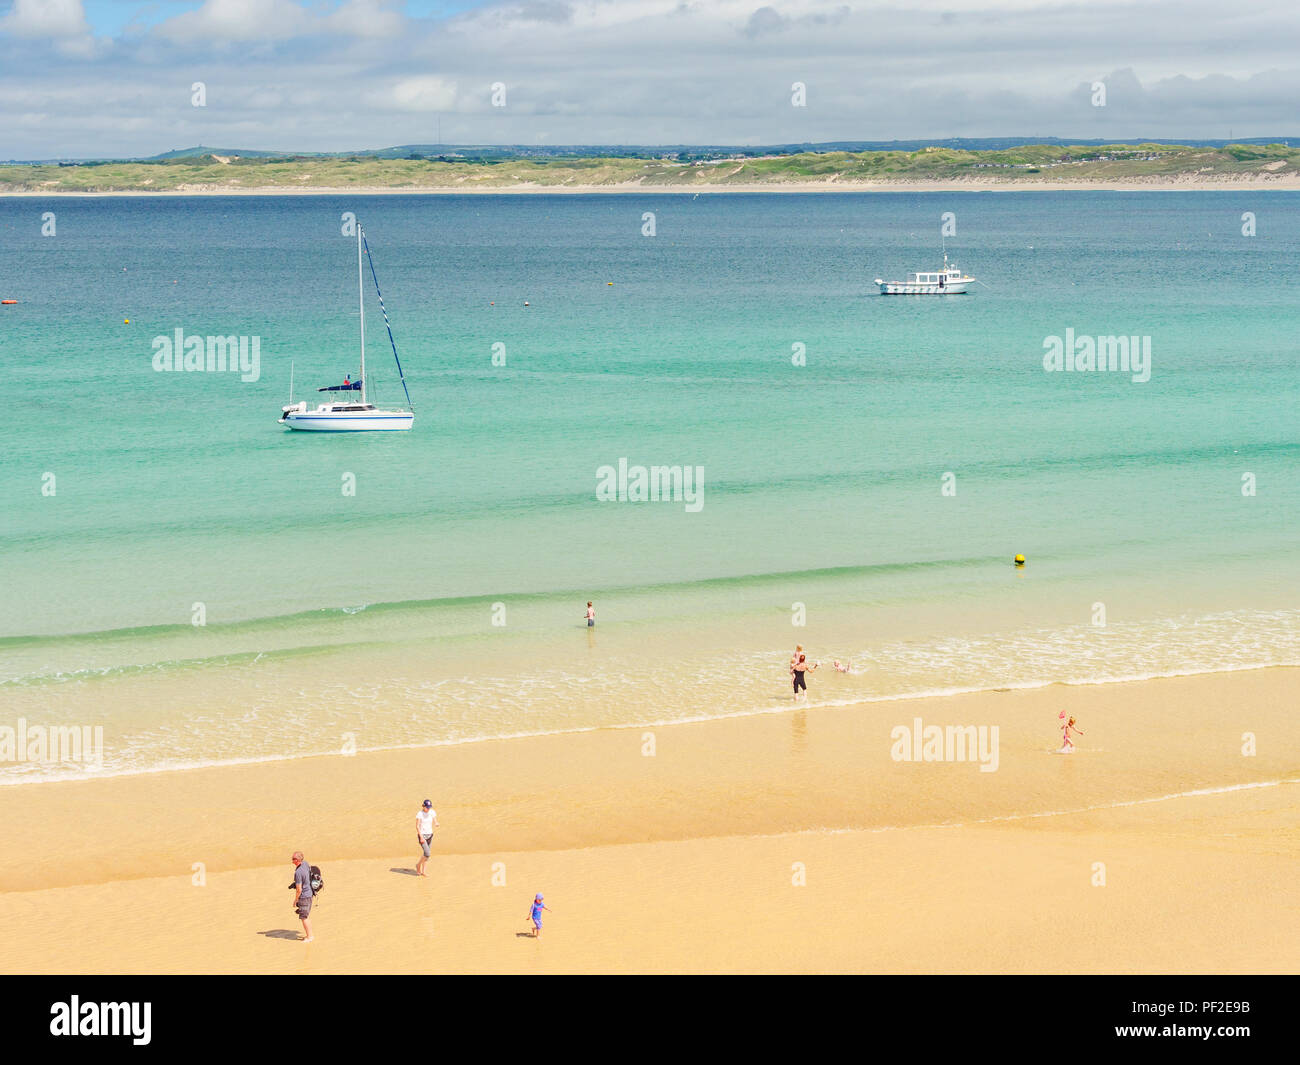 ST IVES, ENGLAND - JUNE 19: Families enjoying paddling in the sea at Porthminster Beach, in St Ives, on a hot Summer day. In St Ives, Cornwall, Englan - Stock Image